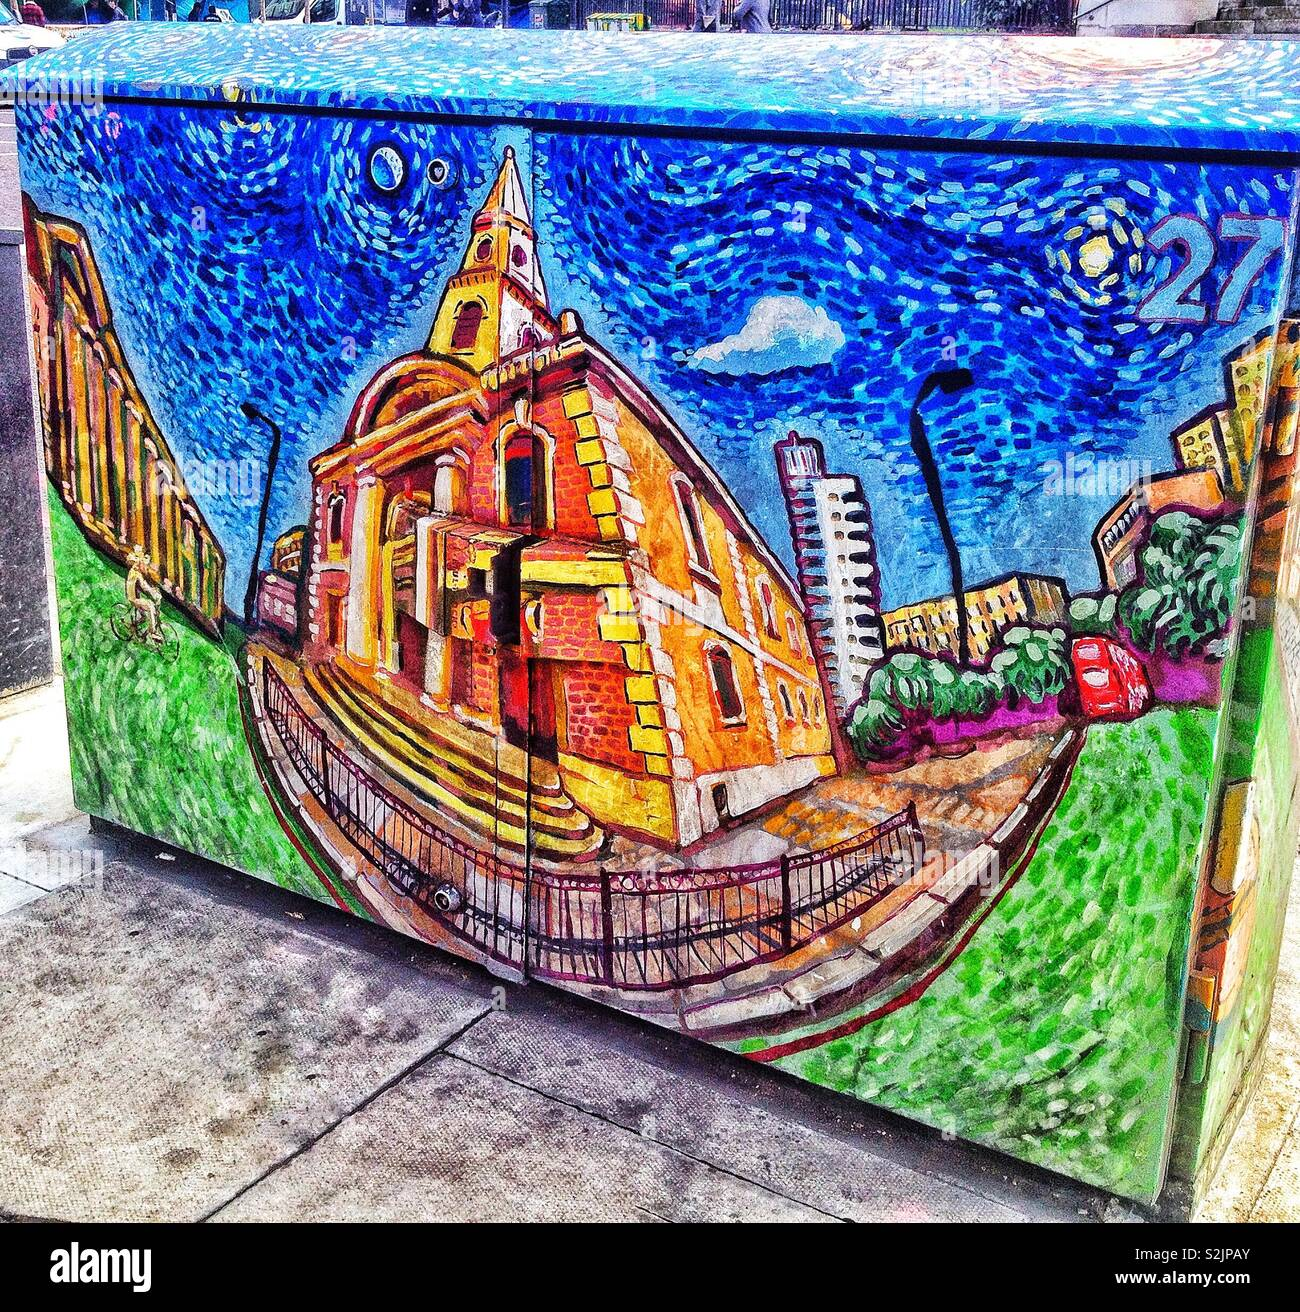 A close up of a street electricity/cable junction box painted with a stylised image of the 18th century St George the Martyr church, in London, England, UK. - Stock Image